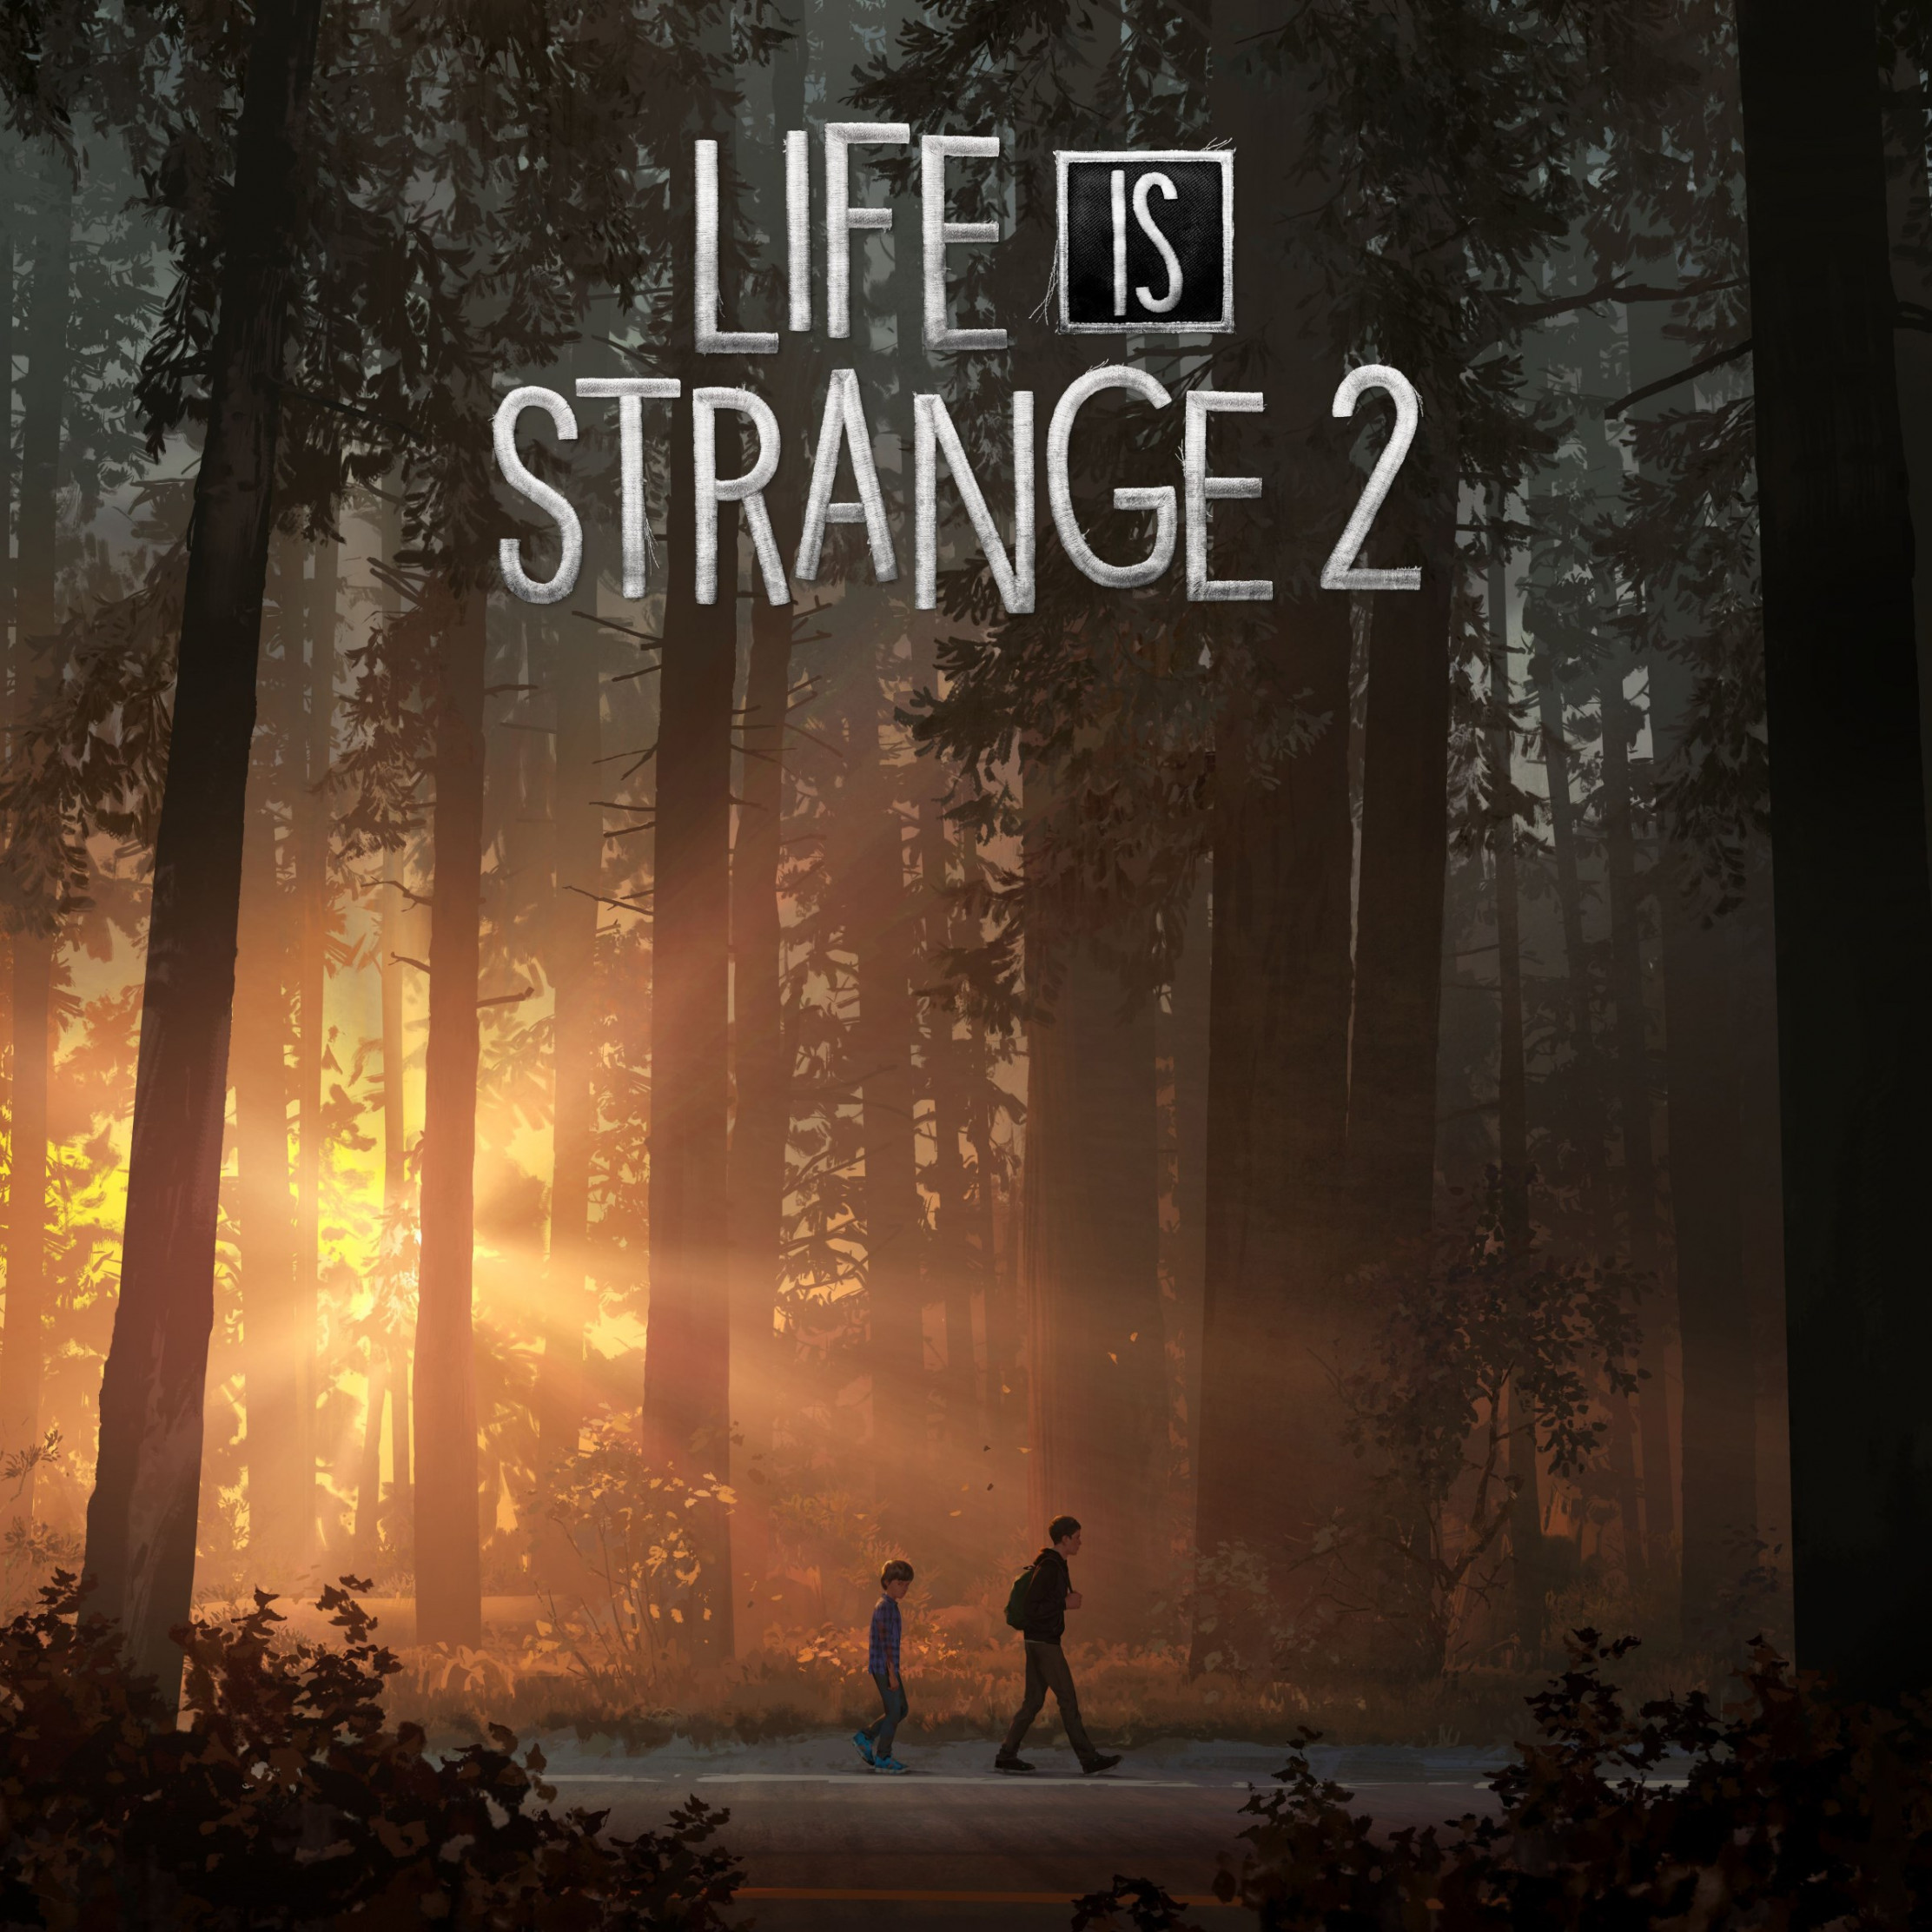 Life Is Strange 2 wallpaper 2224x2224